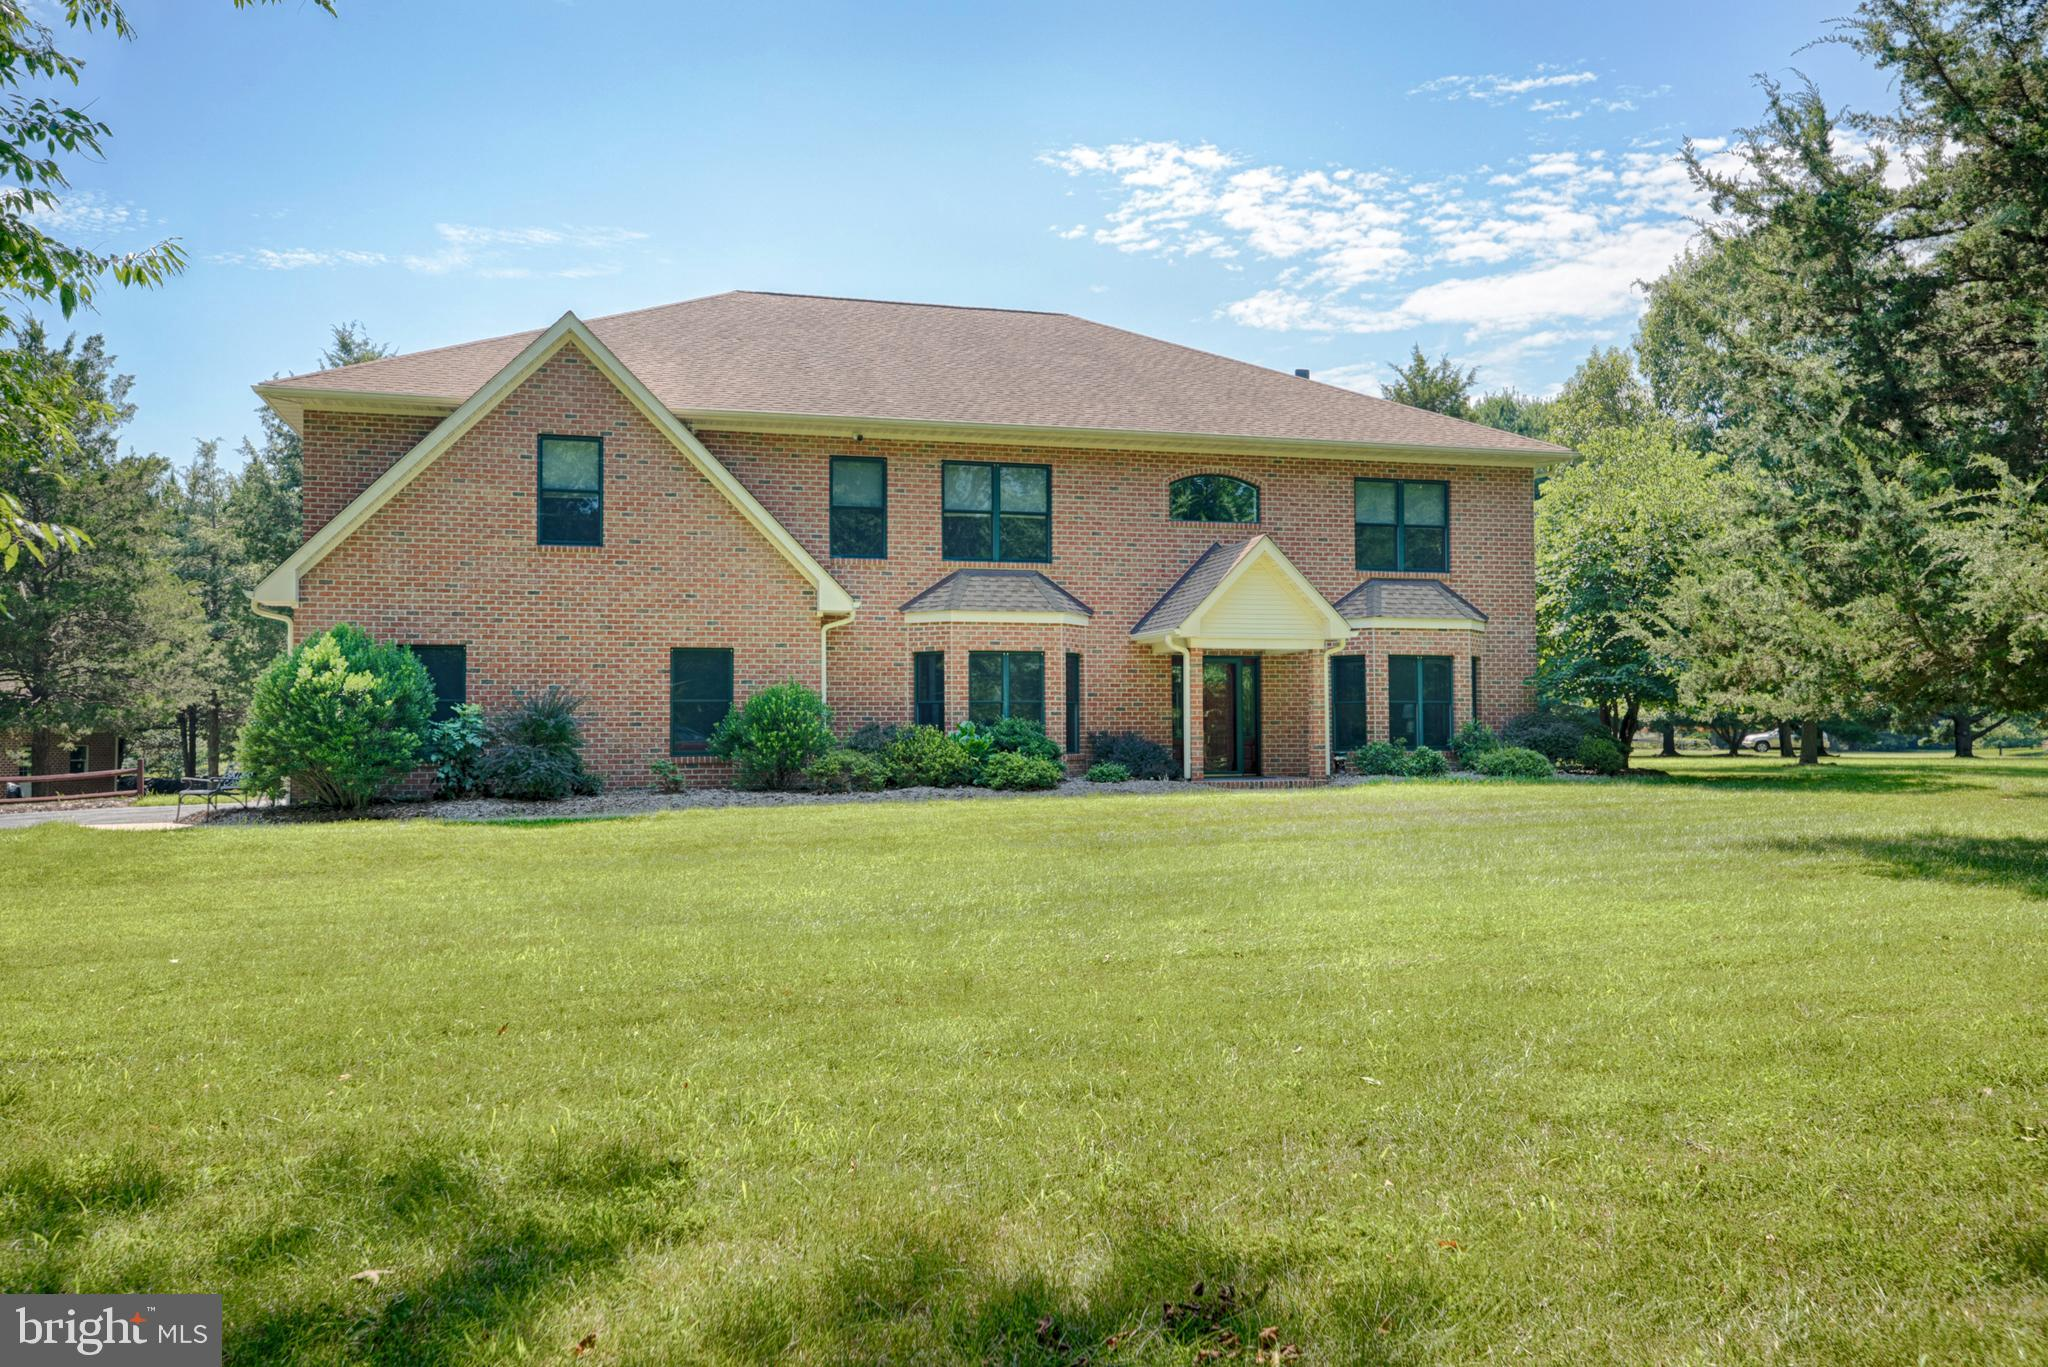 12784 COOPERS LANE, WORTON, MD 21678